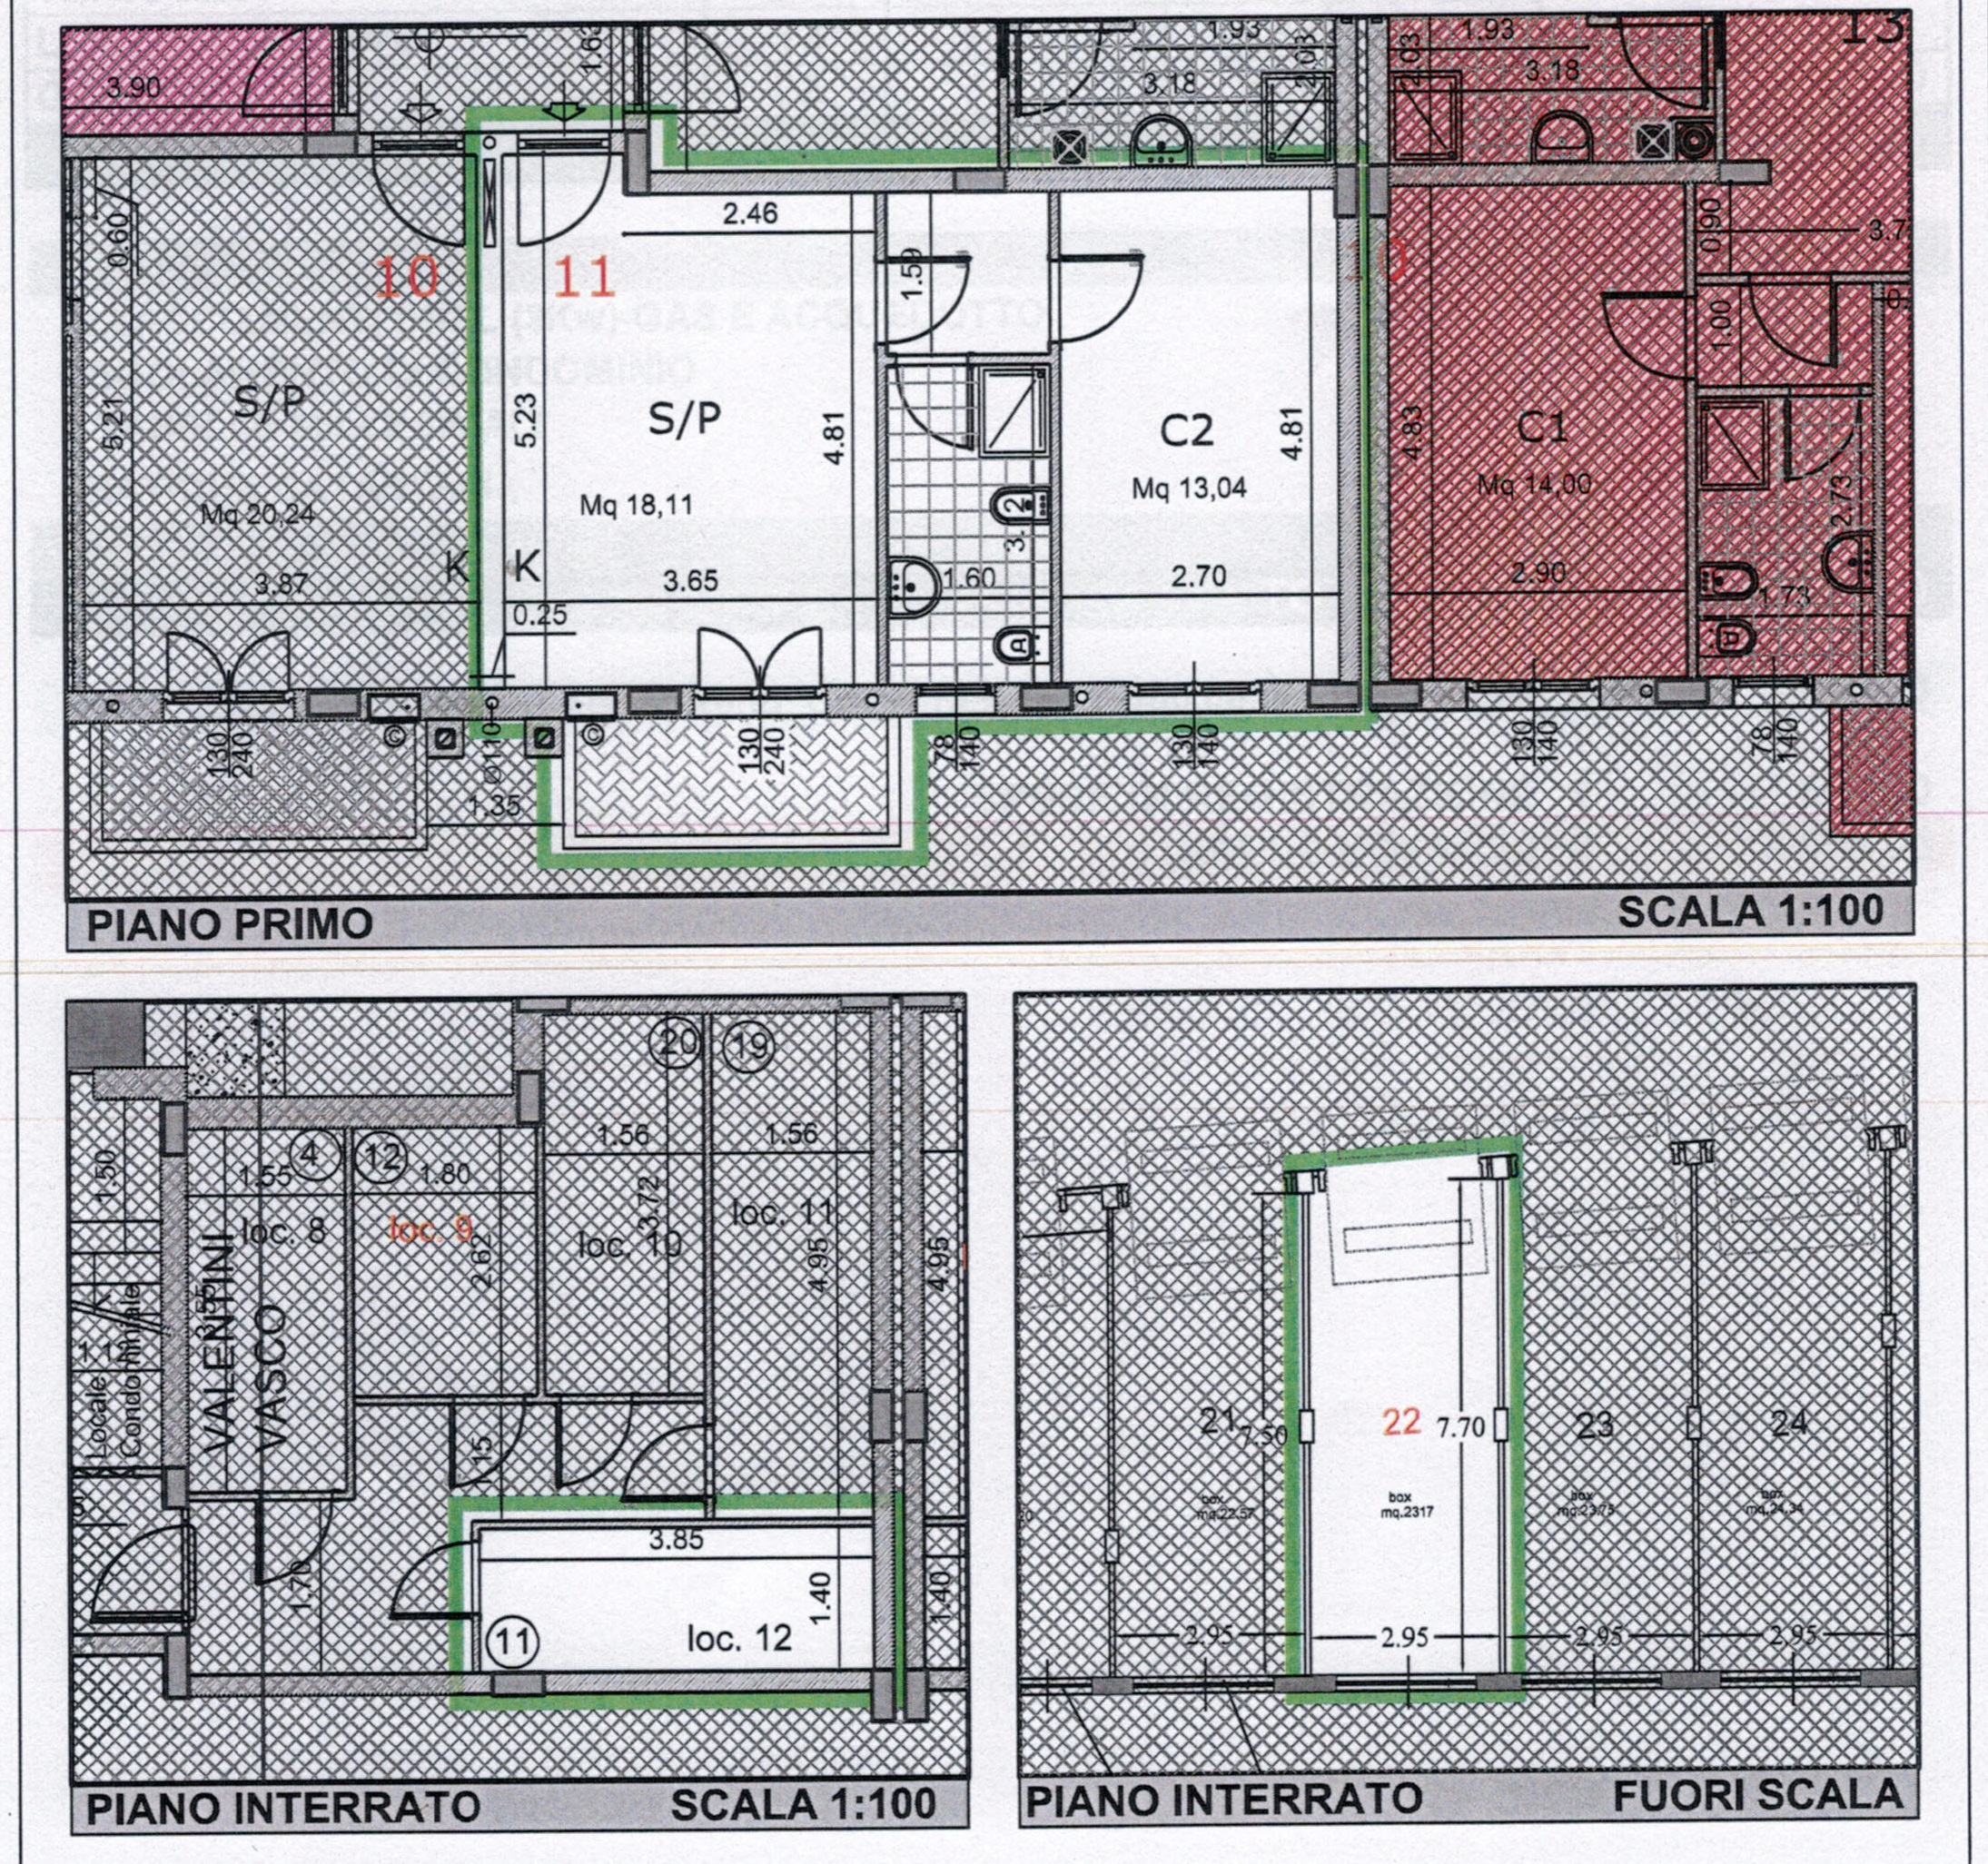 Plan 1/4 for ref. 839